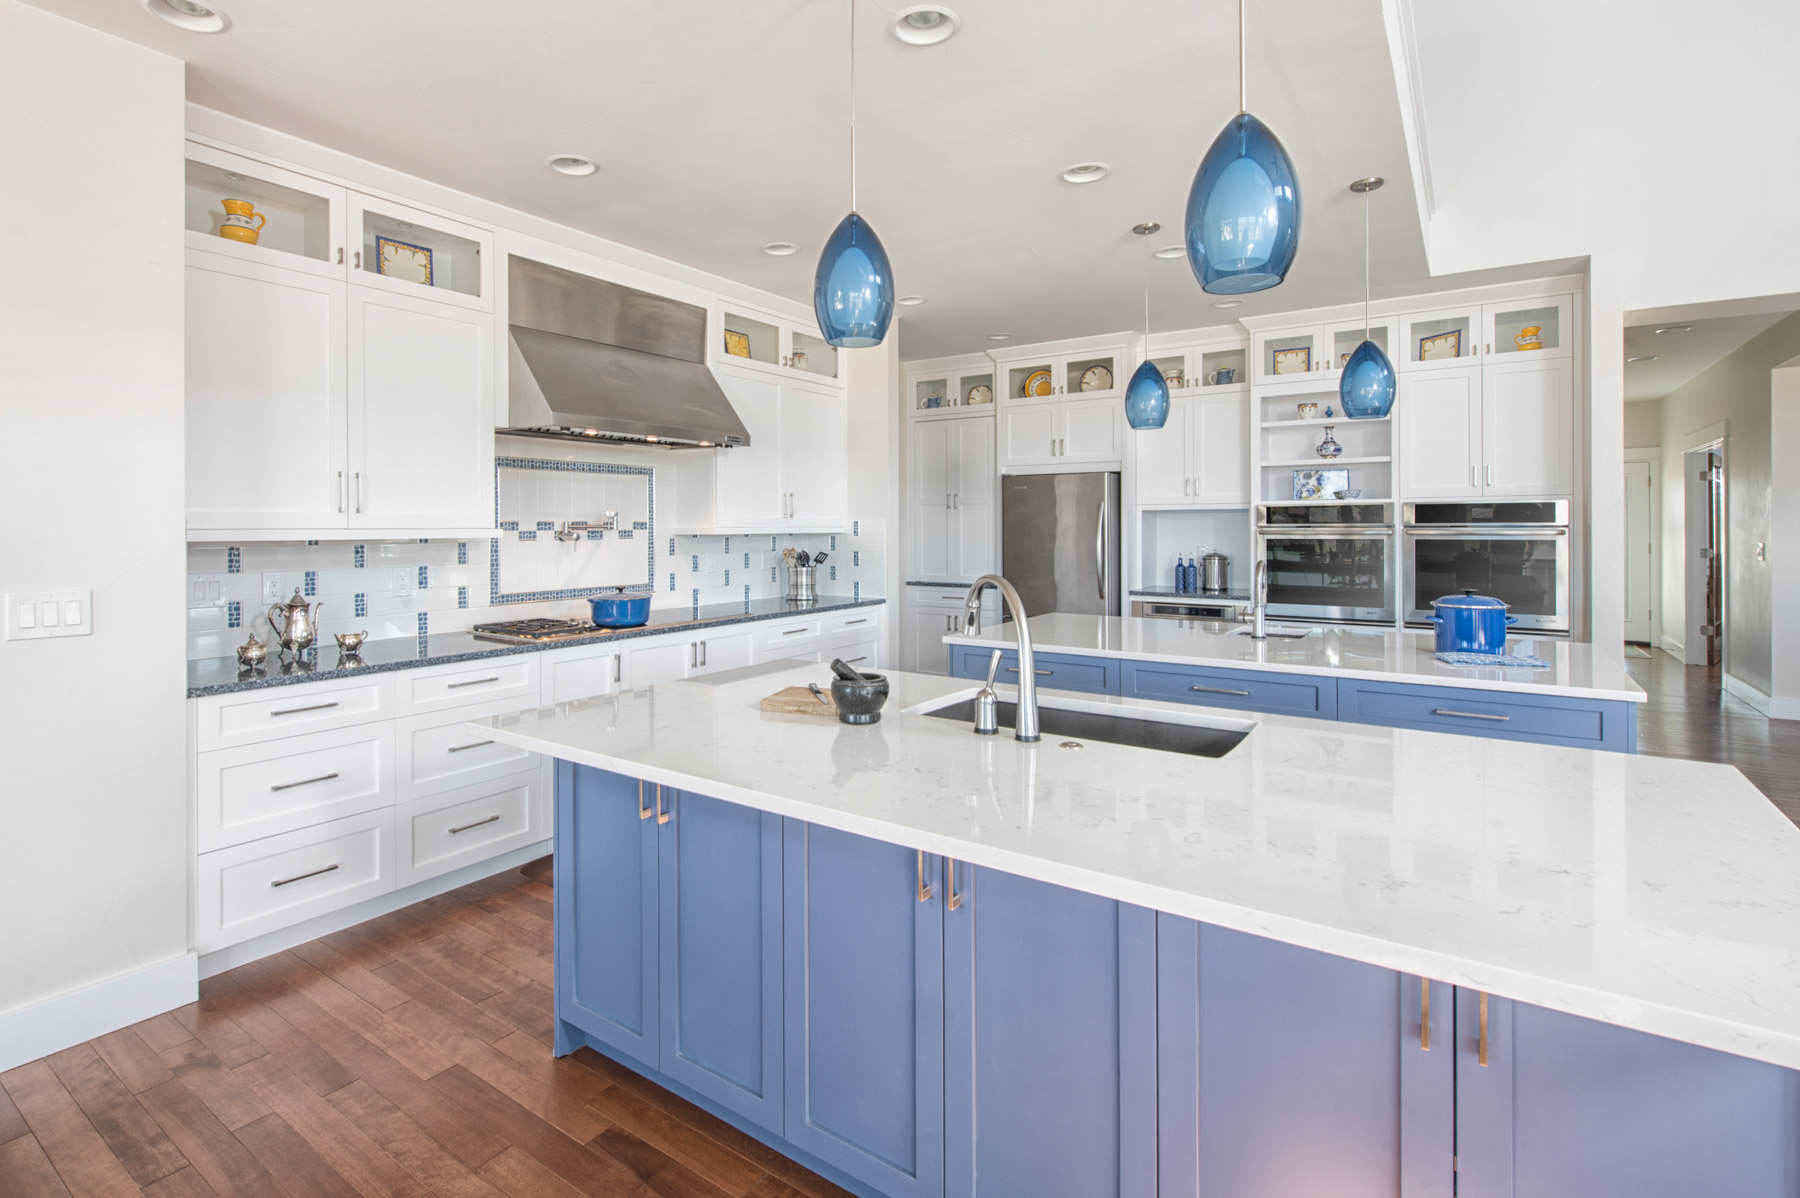 parker-kitchen-designed-by-michelle-ku-at-ku-interior-design-v3-1